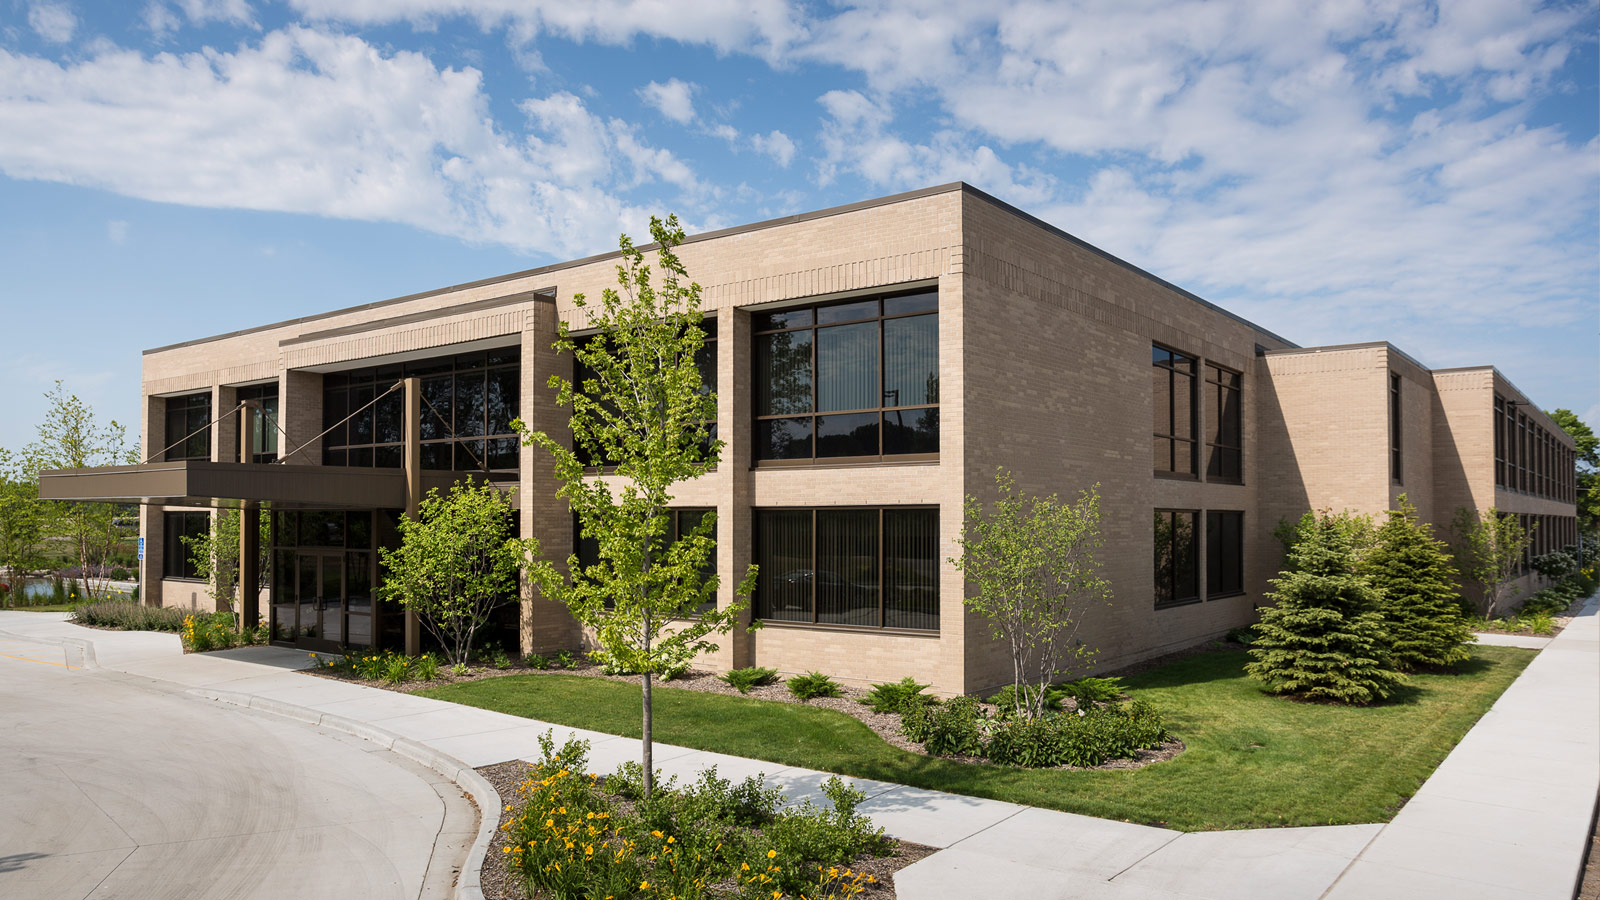 North star mutual insurance company corporate office for Home office additions